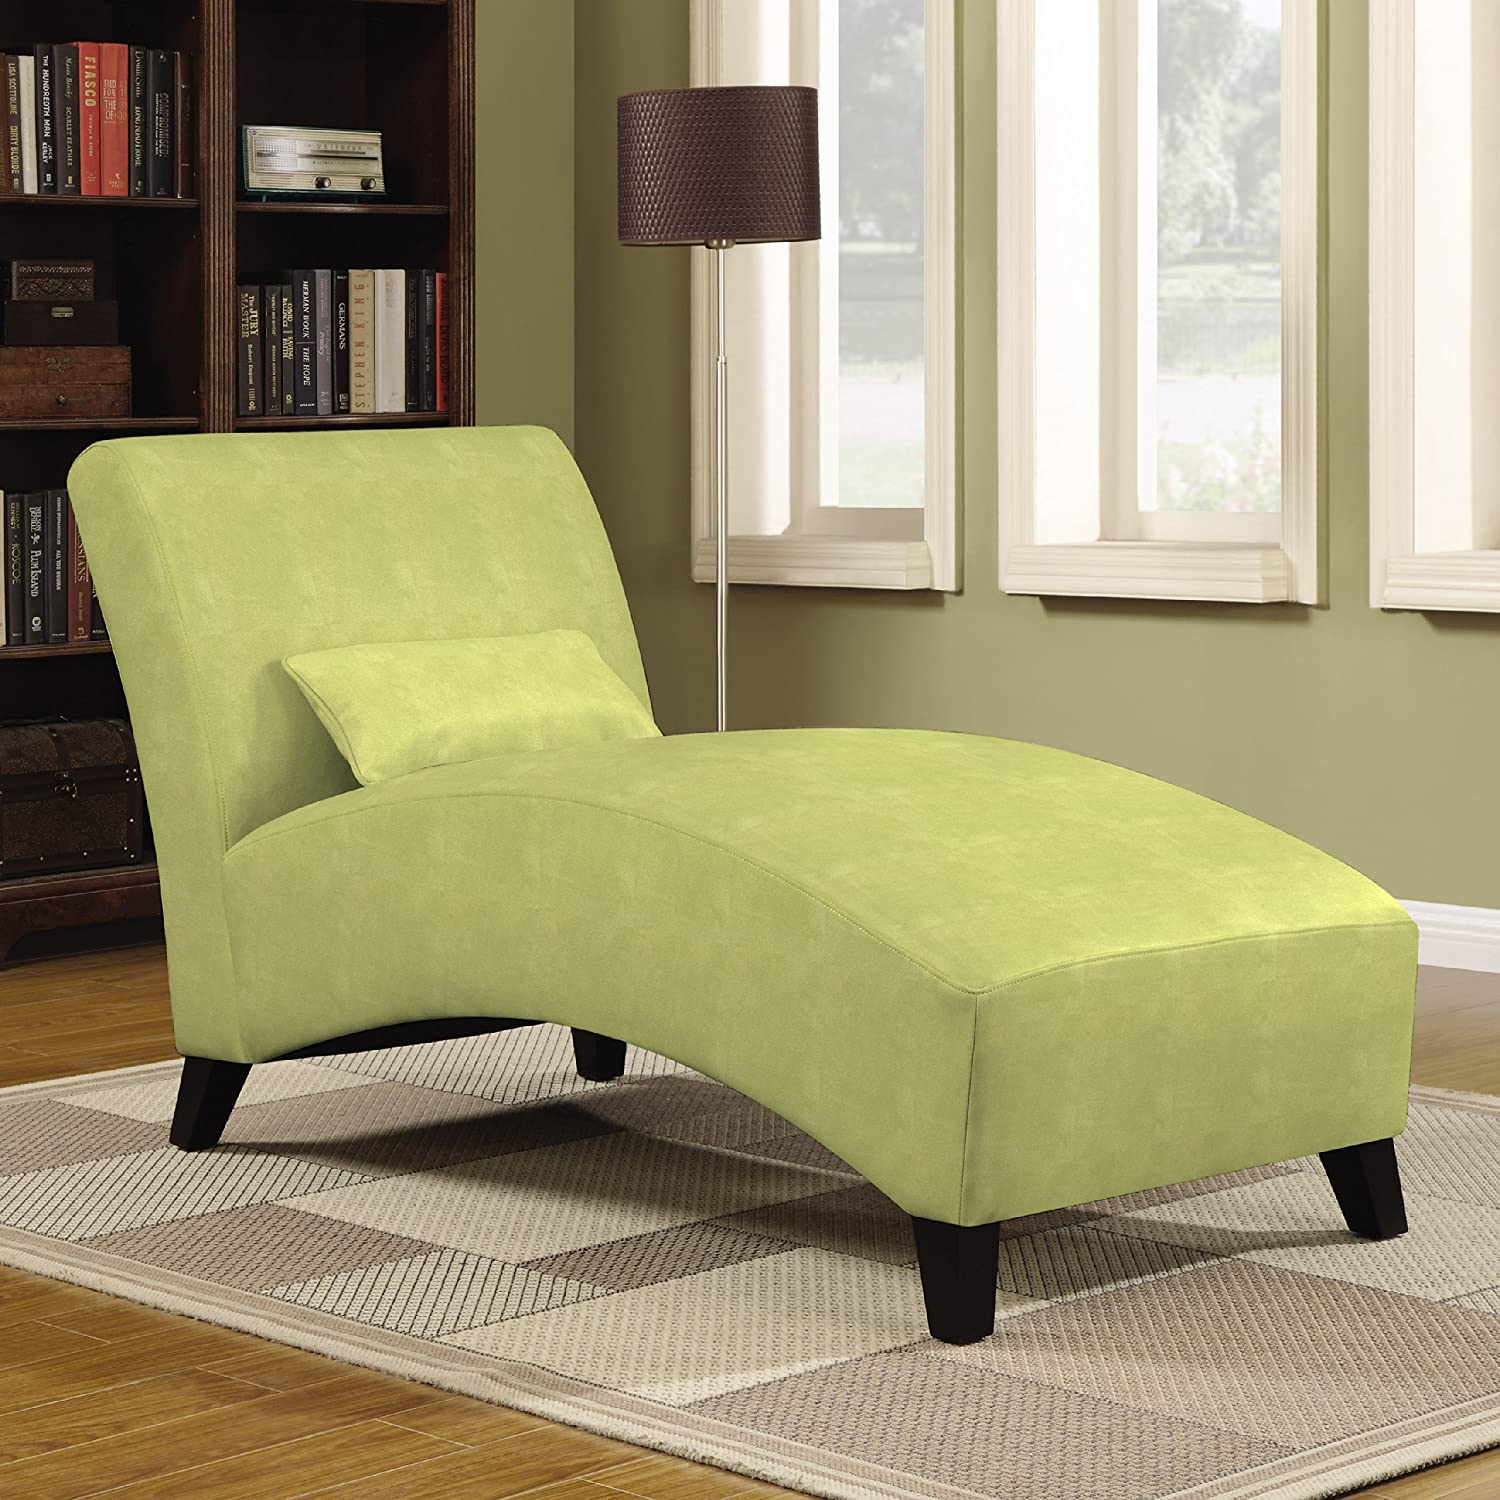 Amazon Handy Living Chaise Lounge Chair Gecko Green Kitchen